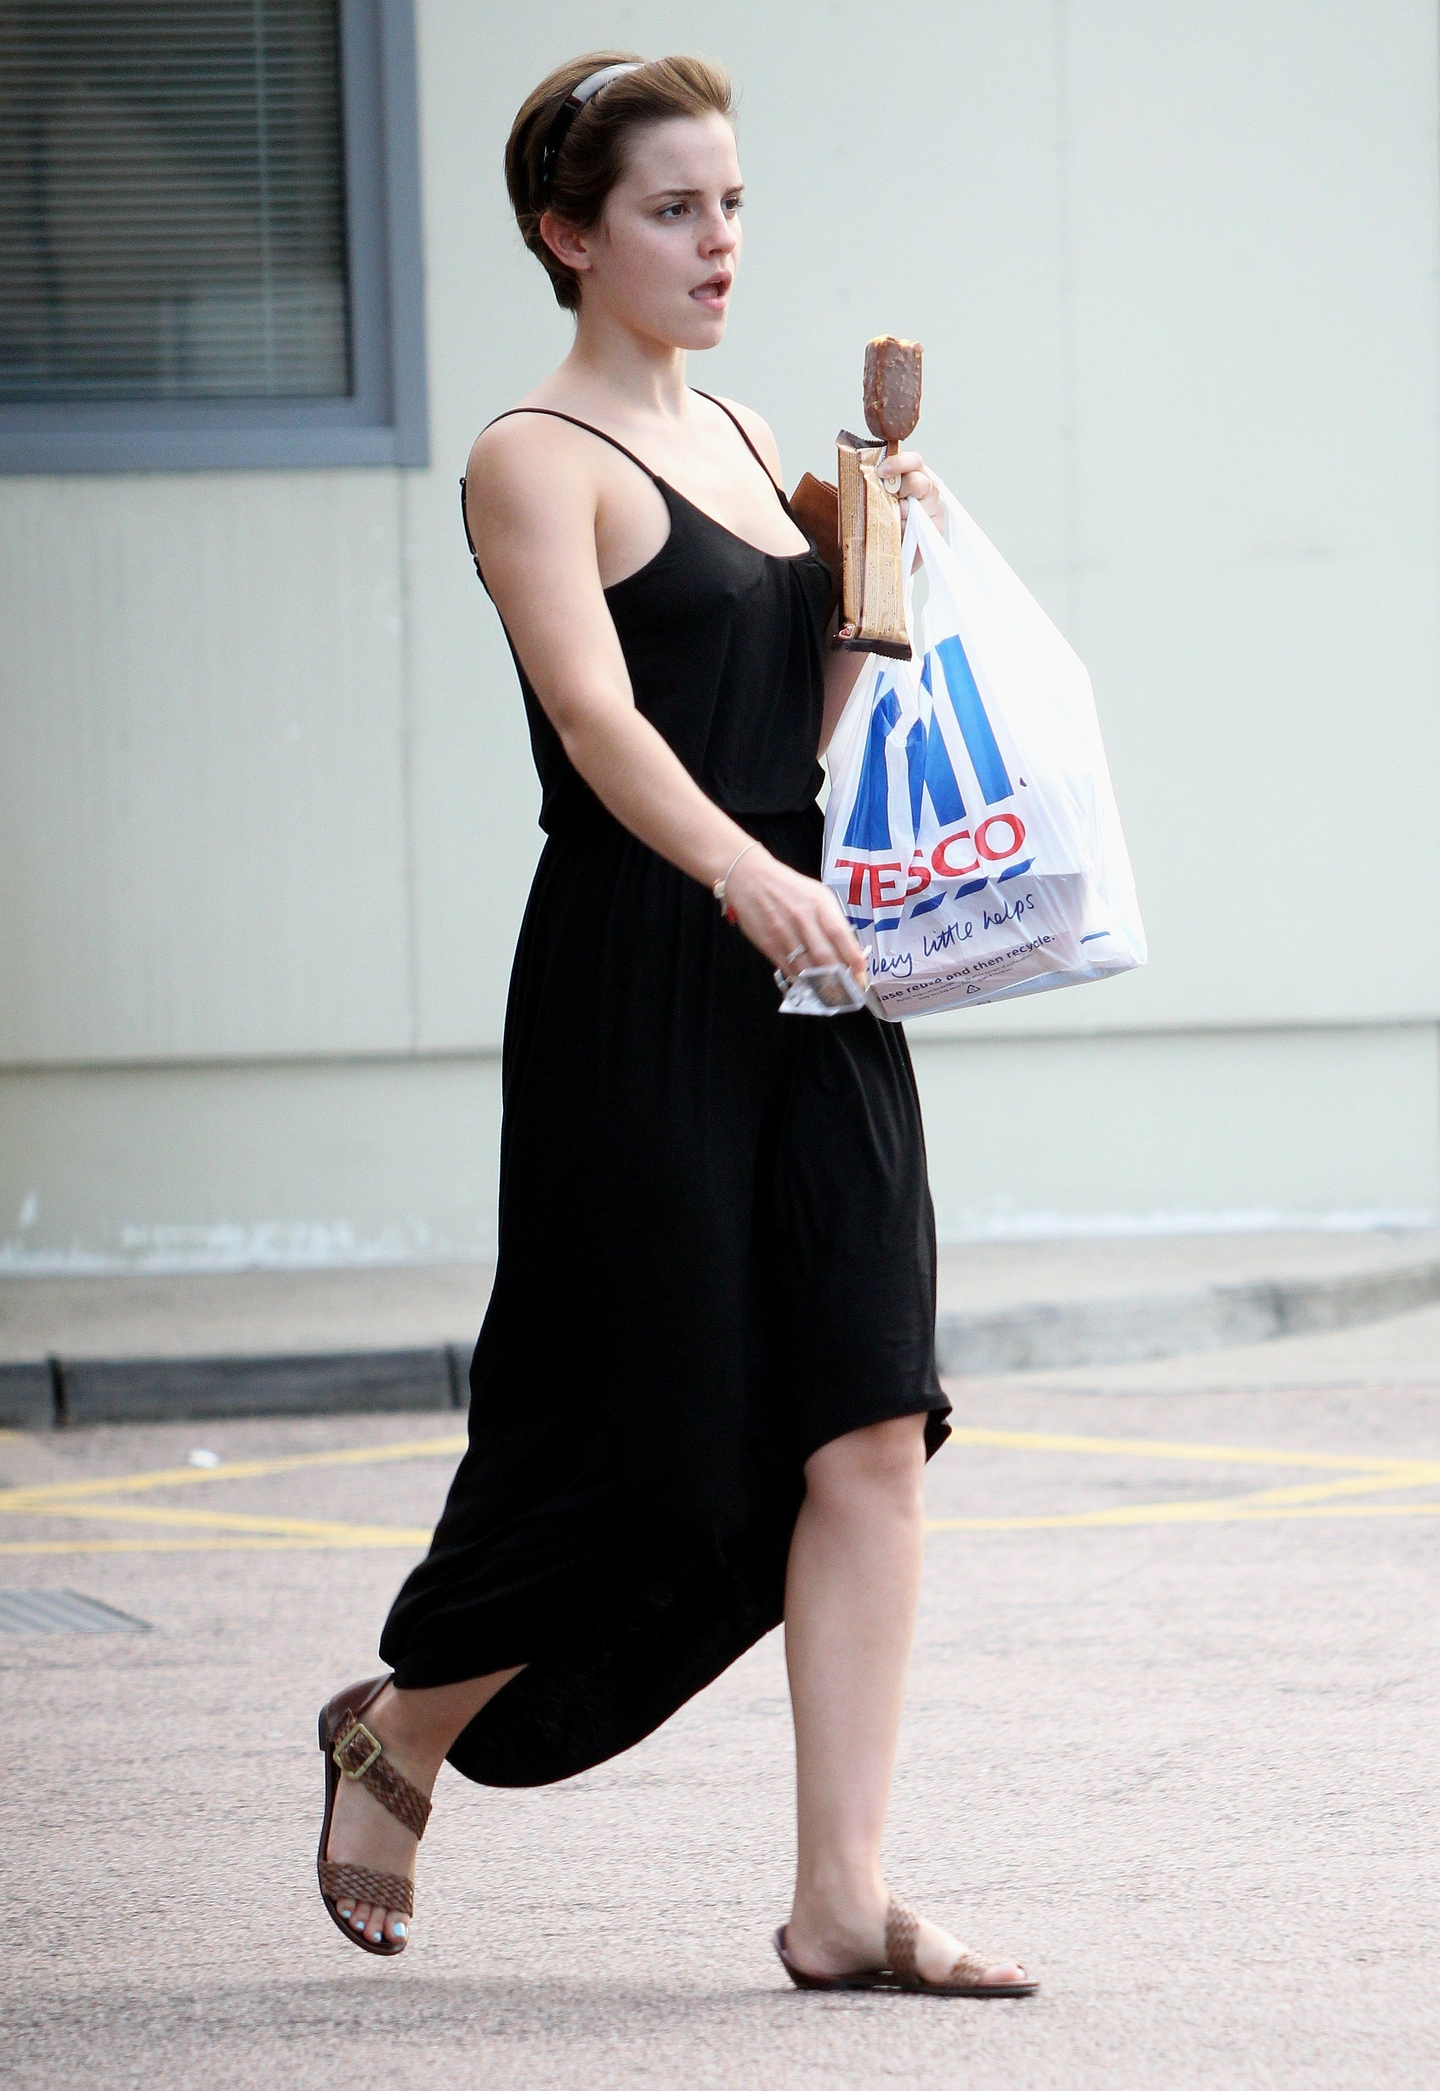 emma-watson-black-dress-candids-london-aug-06-2011-06 ... эмма уотсон